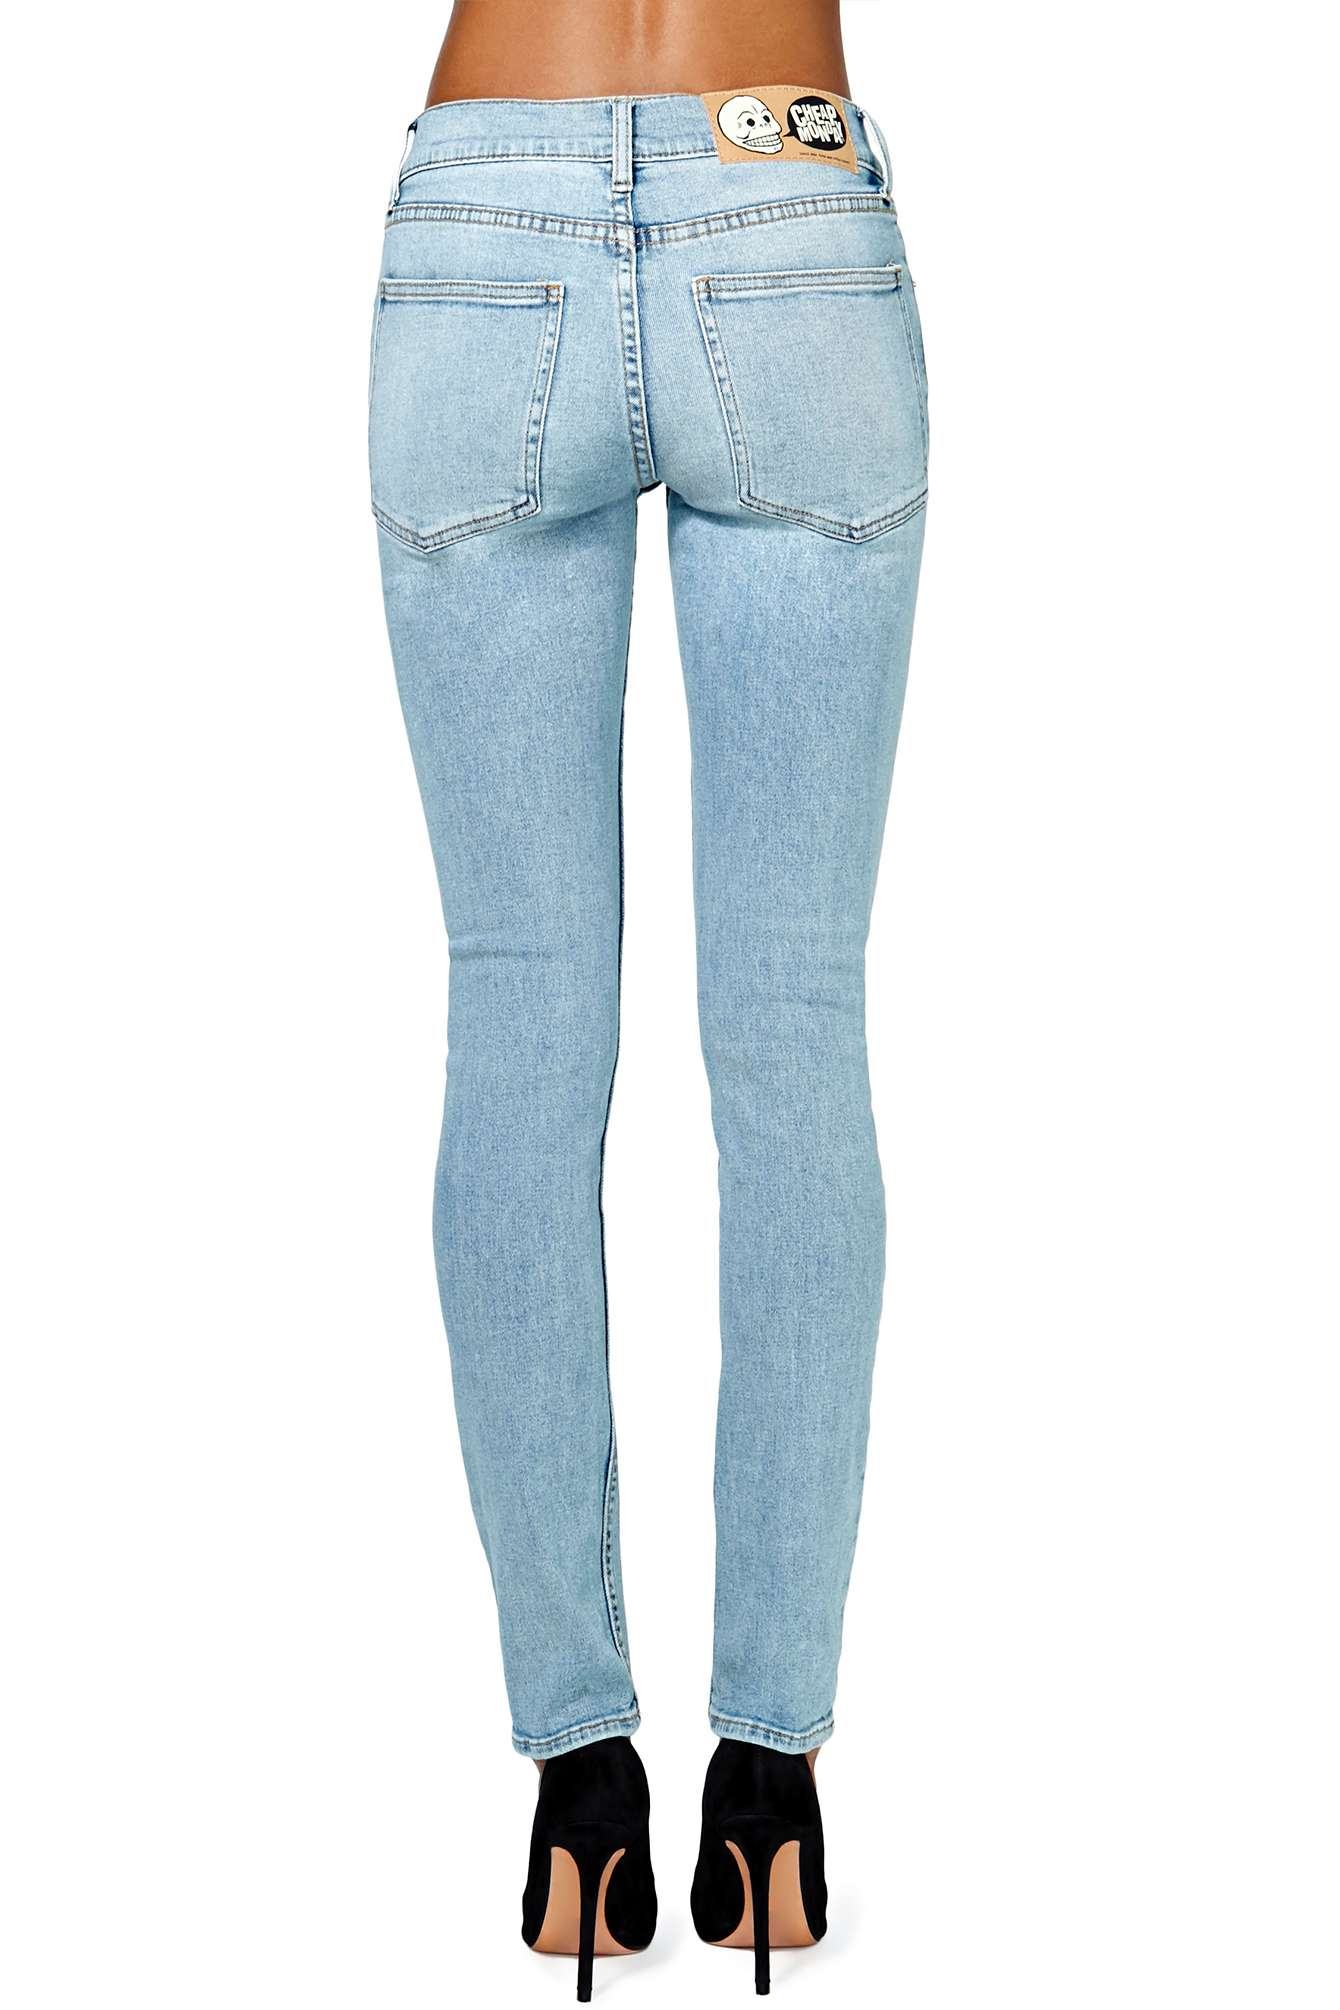 Nasty gal Cheap Monday Tight Skinny Jeans Light Wash in Blue | Lyst